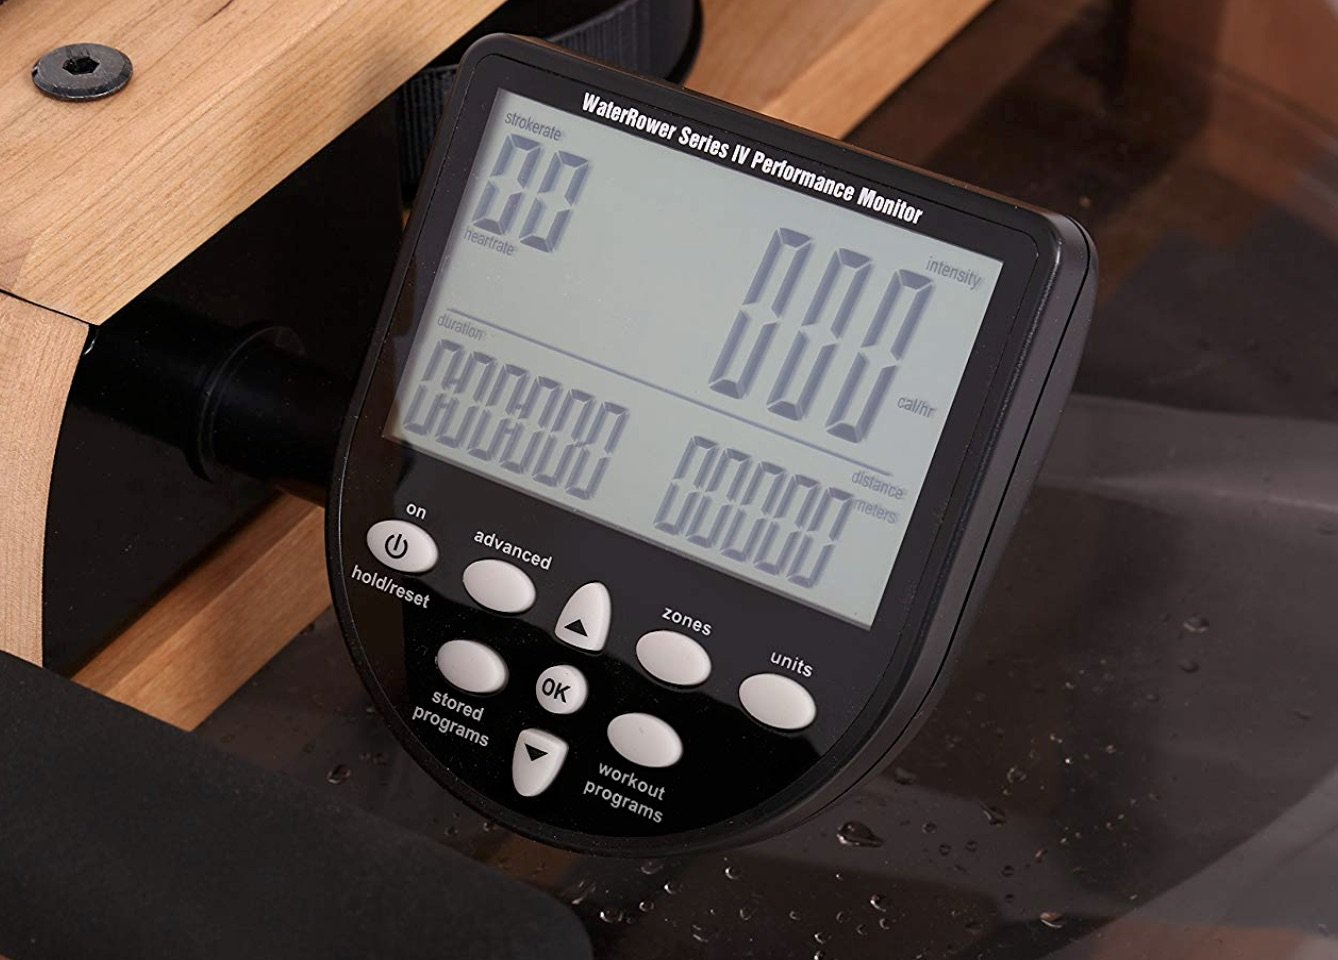 WaterRower Oxbridge Rowing Machine S4 Monitor